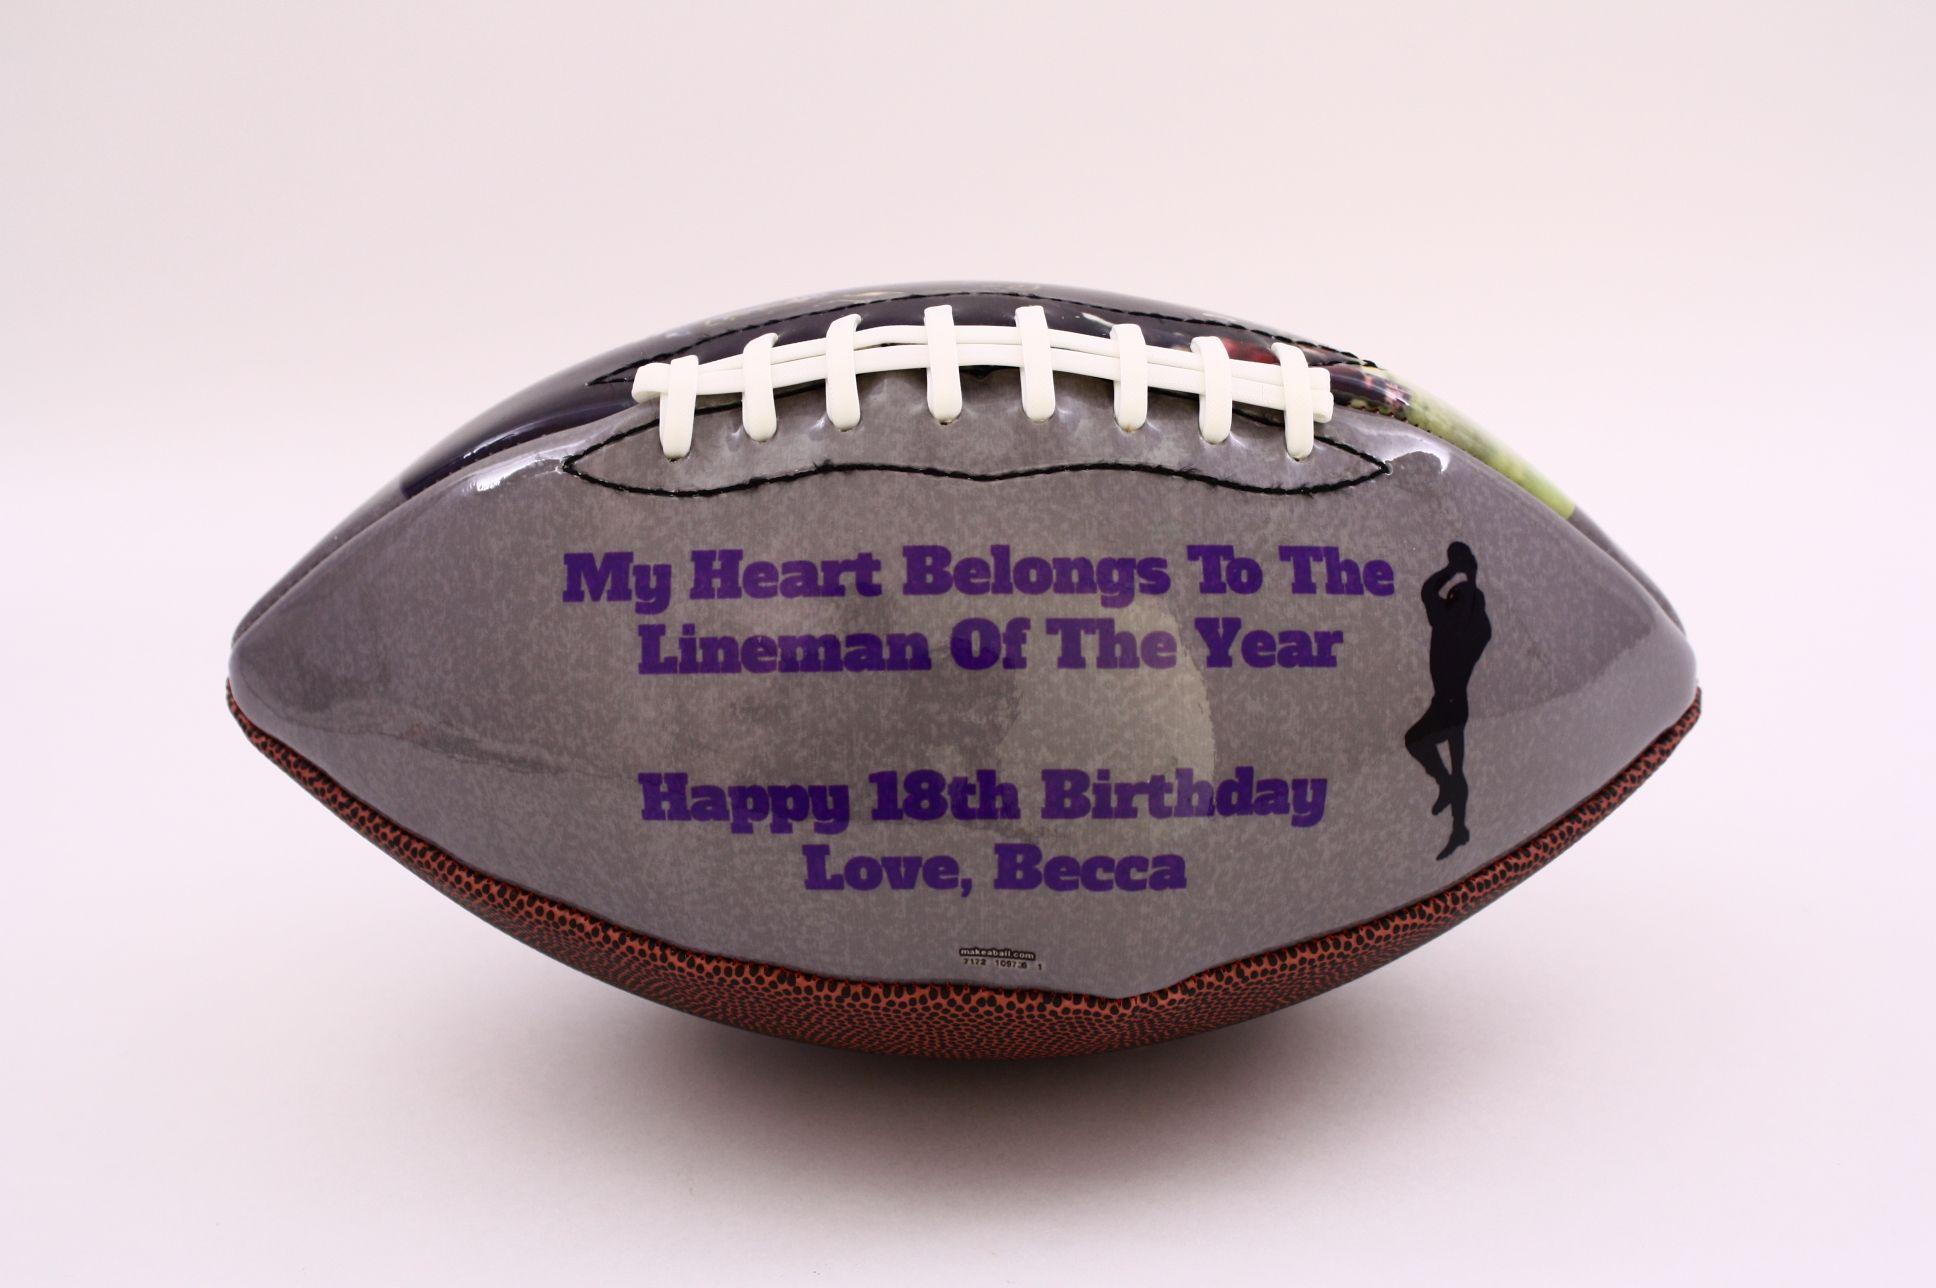 Finally A Customized Sports Valentines Day Gift For Your Boyfriend Or Girlfriend With Images Sports Valentine Gifts For Your Boyfriend Happy Birthday Love